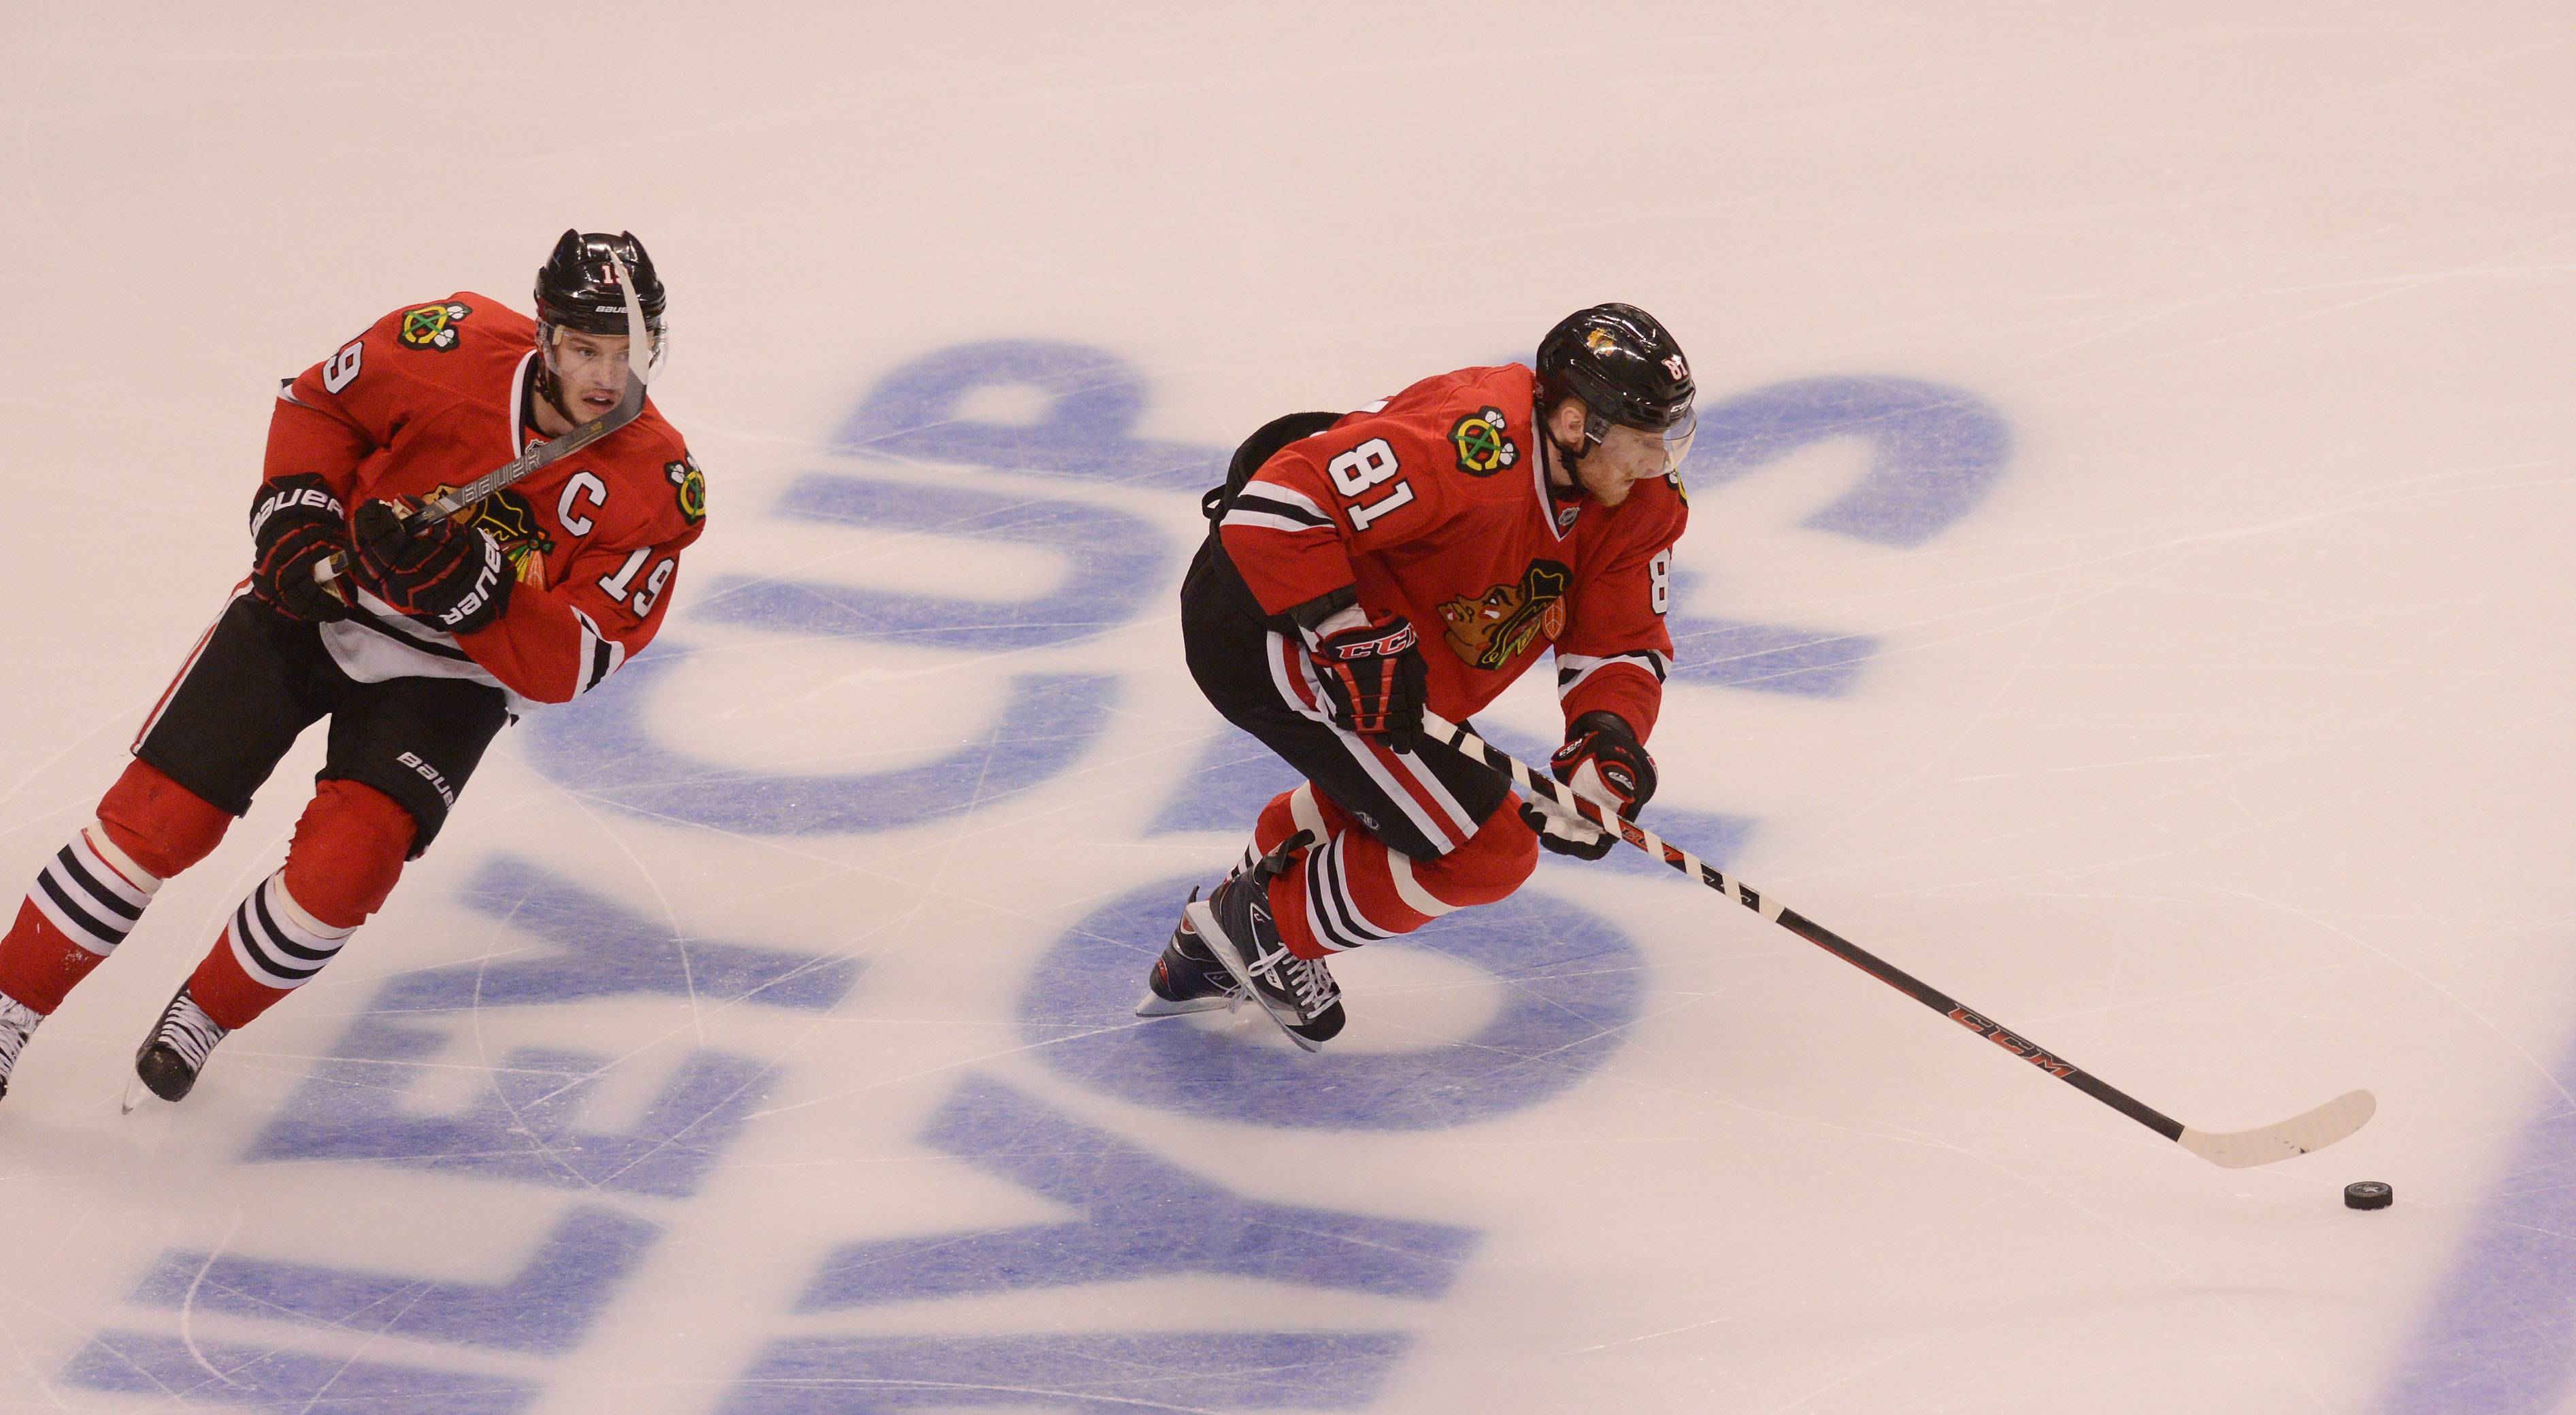 Hossa and Toews make their way up ice in the first OT period.